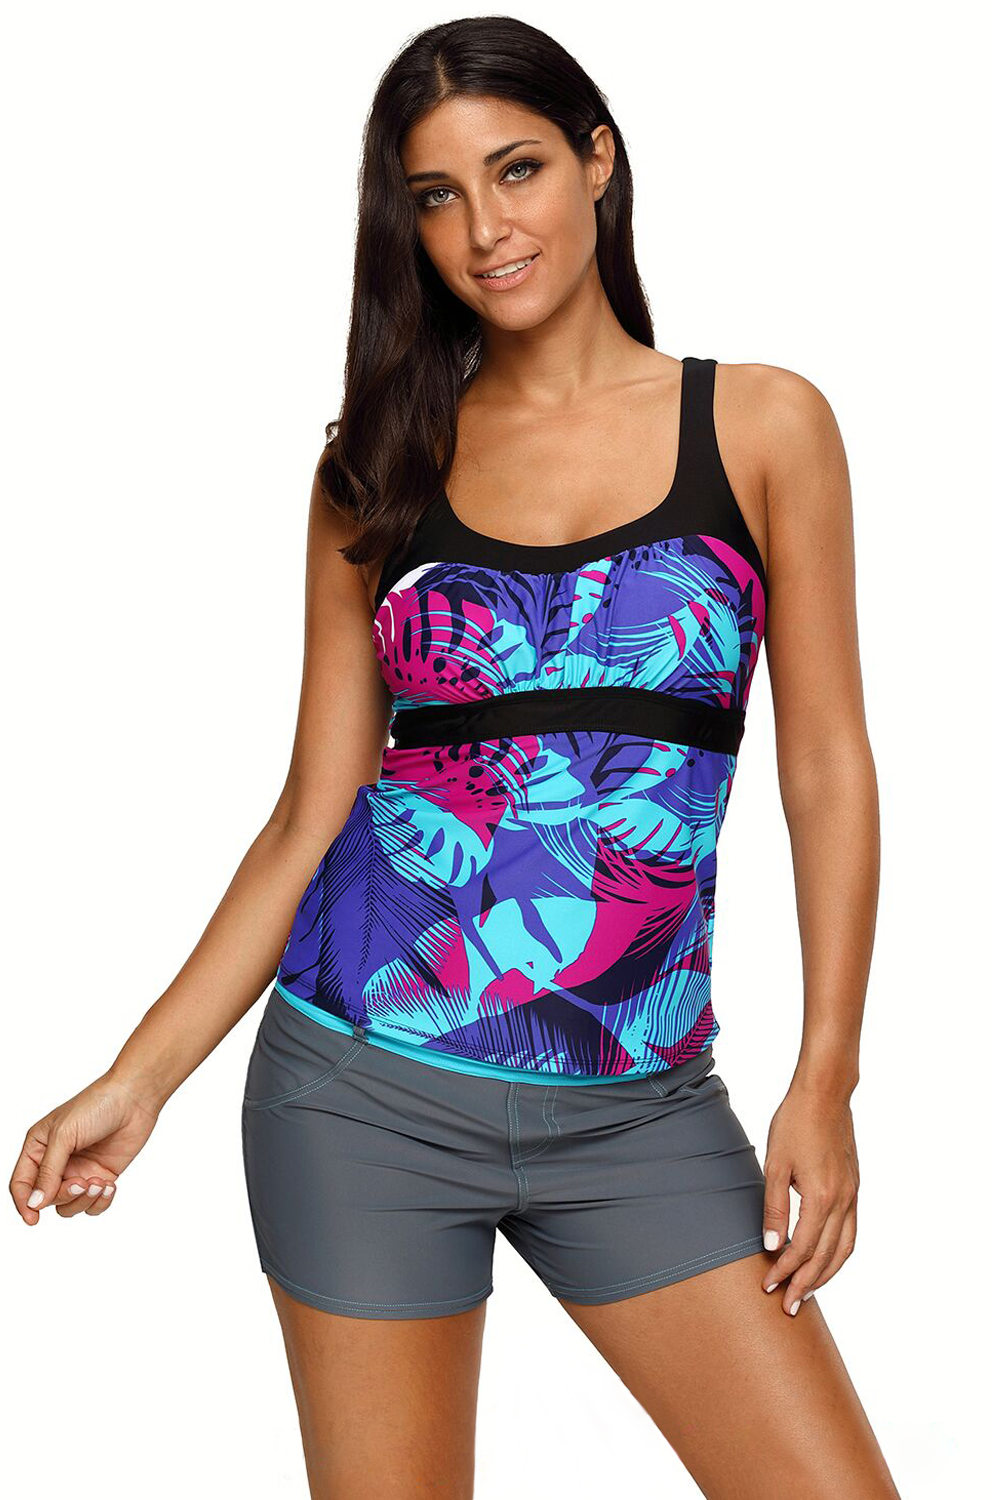 Womens abstract printed camisole tankini top summer ...